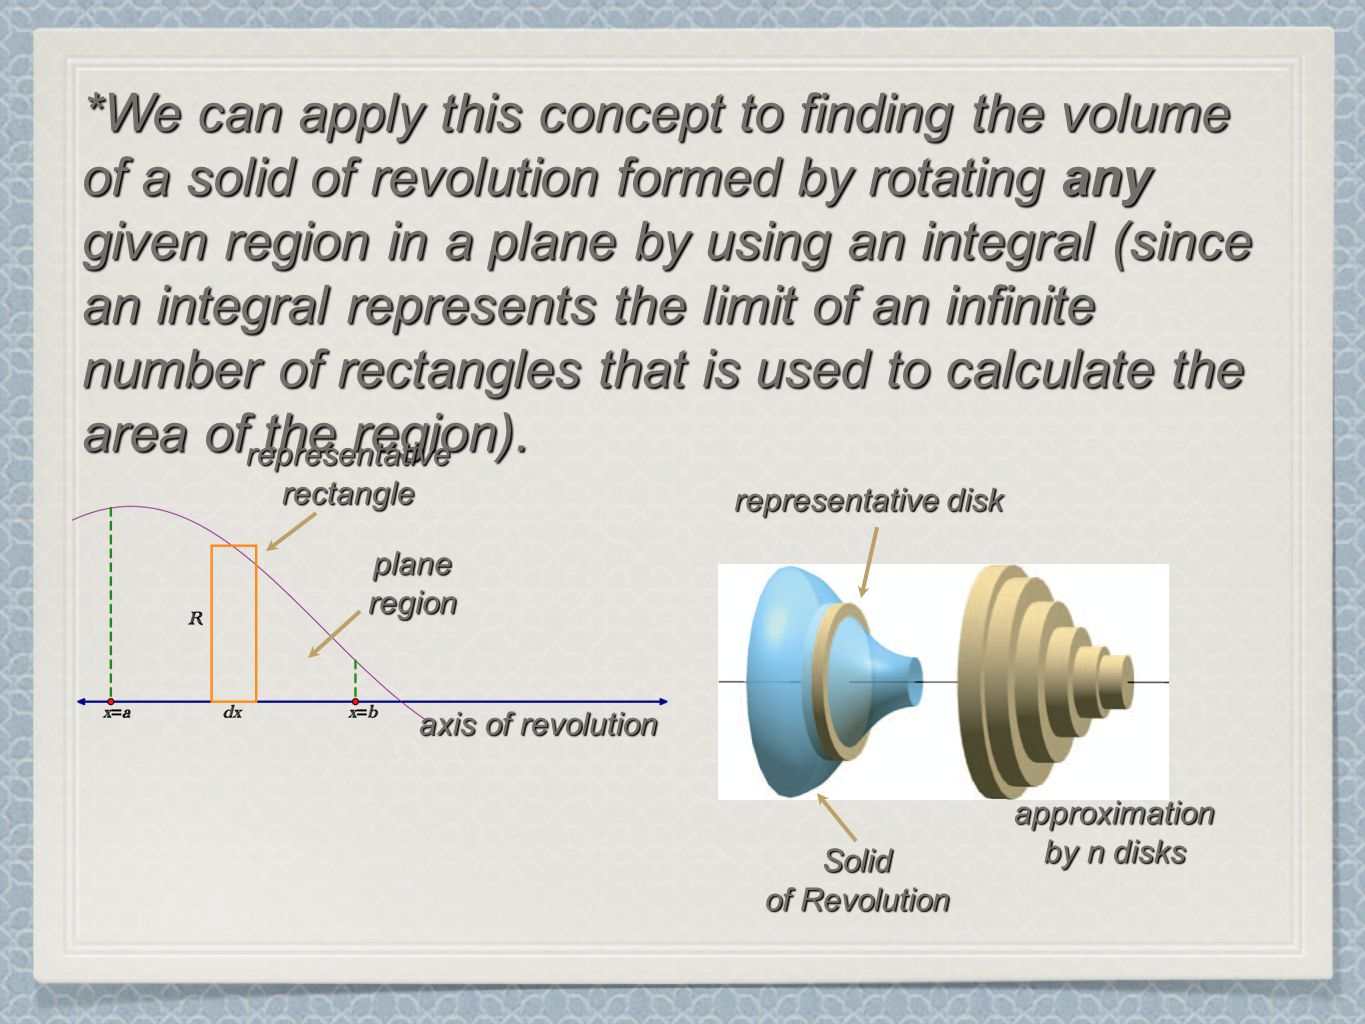 *We can apply this concept to finding the volume of a solid of revolution formed by rotating any given region in a plane by using an integral (since an integral represents the limit of an infinite number of rectangles that is used to calculate the area of the region).